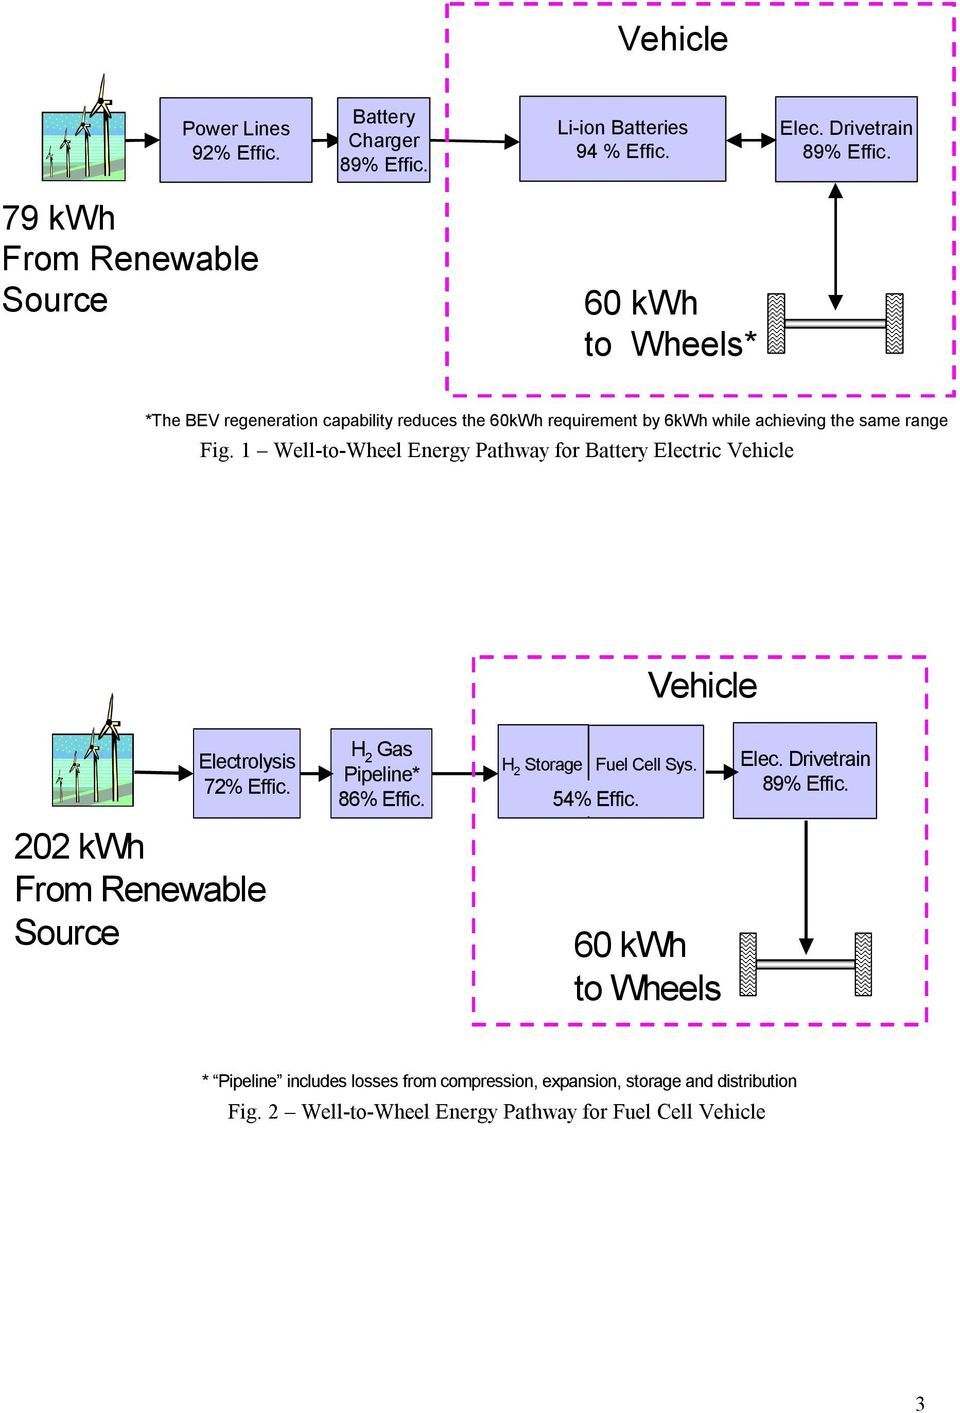 1 Well-to-Wheel Energy Pathway for Battery Electric Vehicle Vehicle Electrolysis 72% Effic. H 2 Gas Pipeline* 86% Effic. H 2 Storage Fuel Cell Sys. 54% Effic.